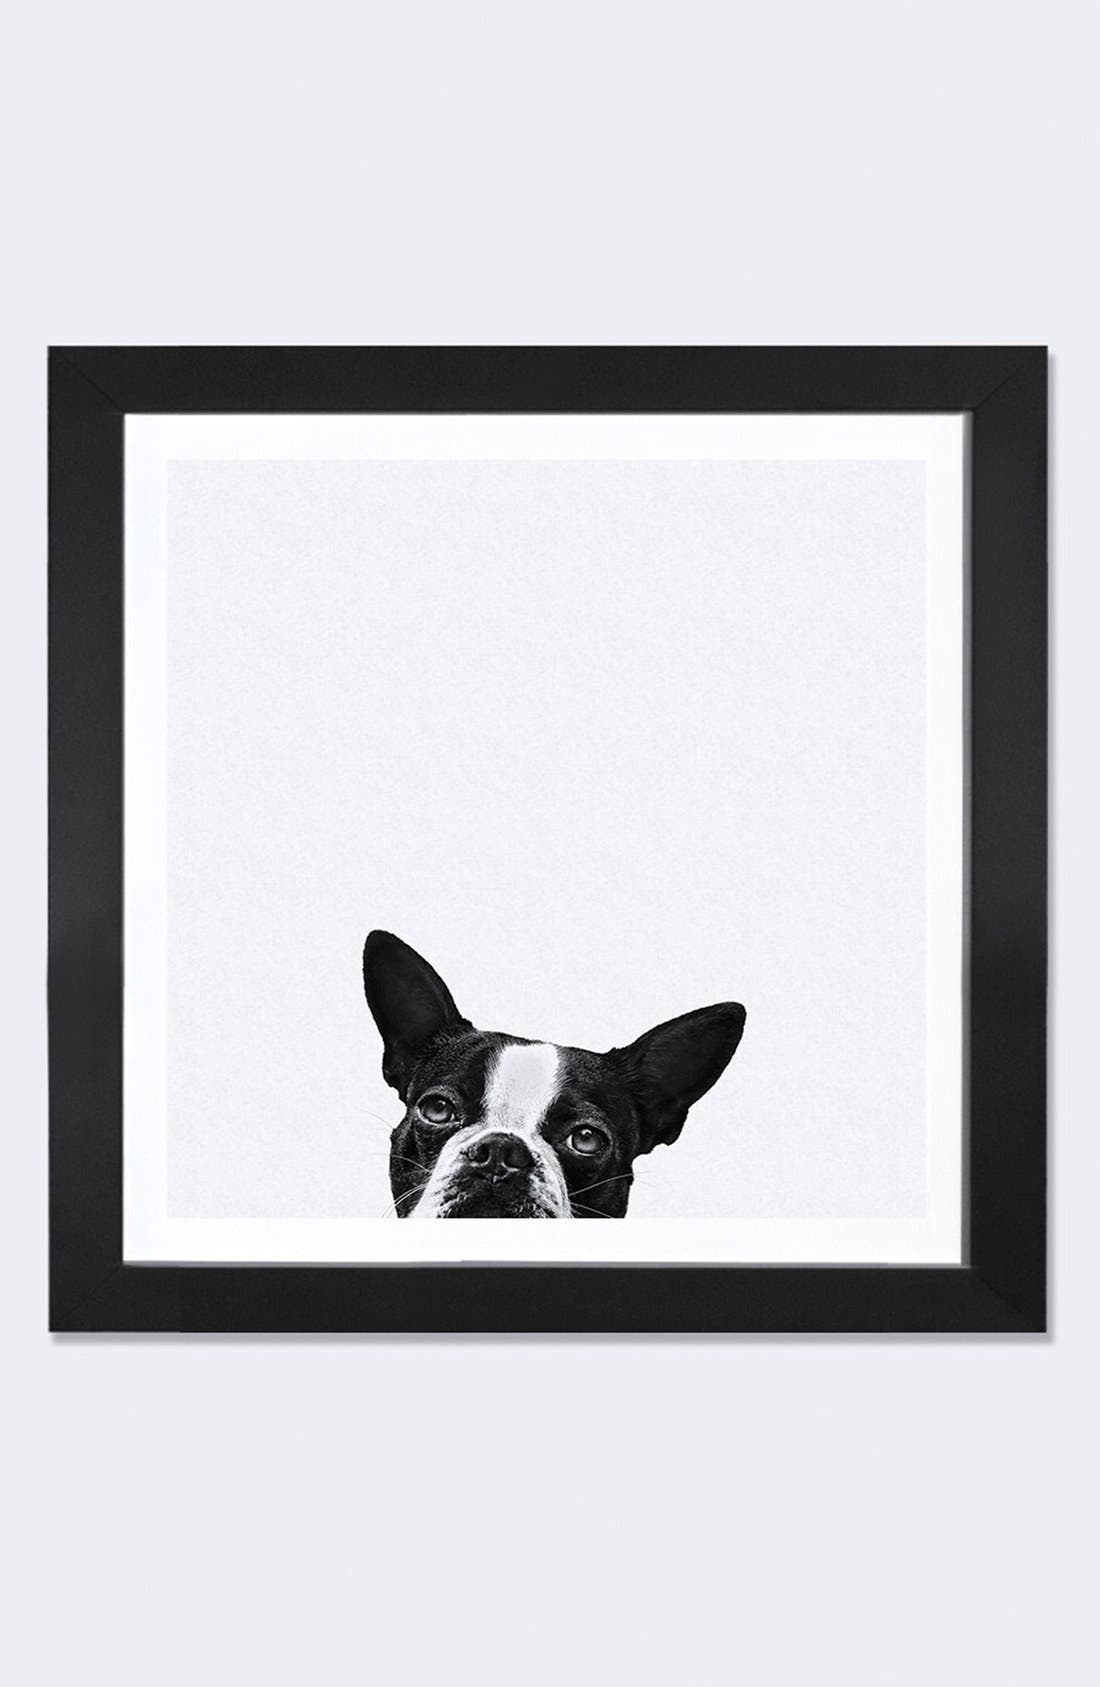 'Loyalty' Framed Fine Art Print,                             Main thumbnail 1, color,                             Black